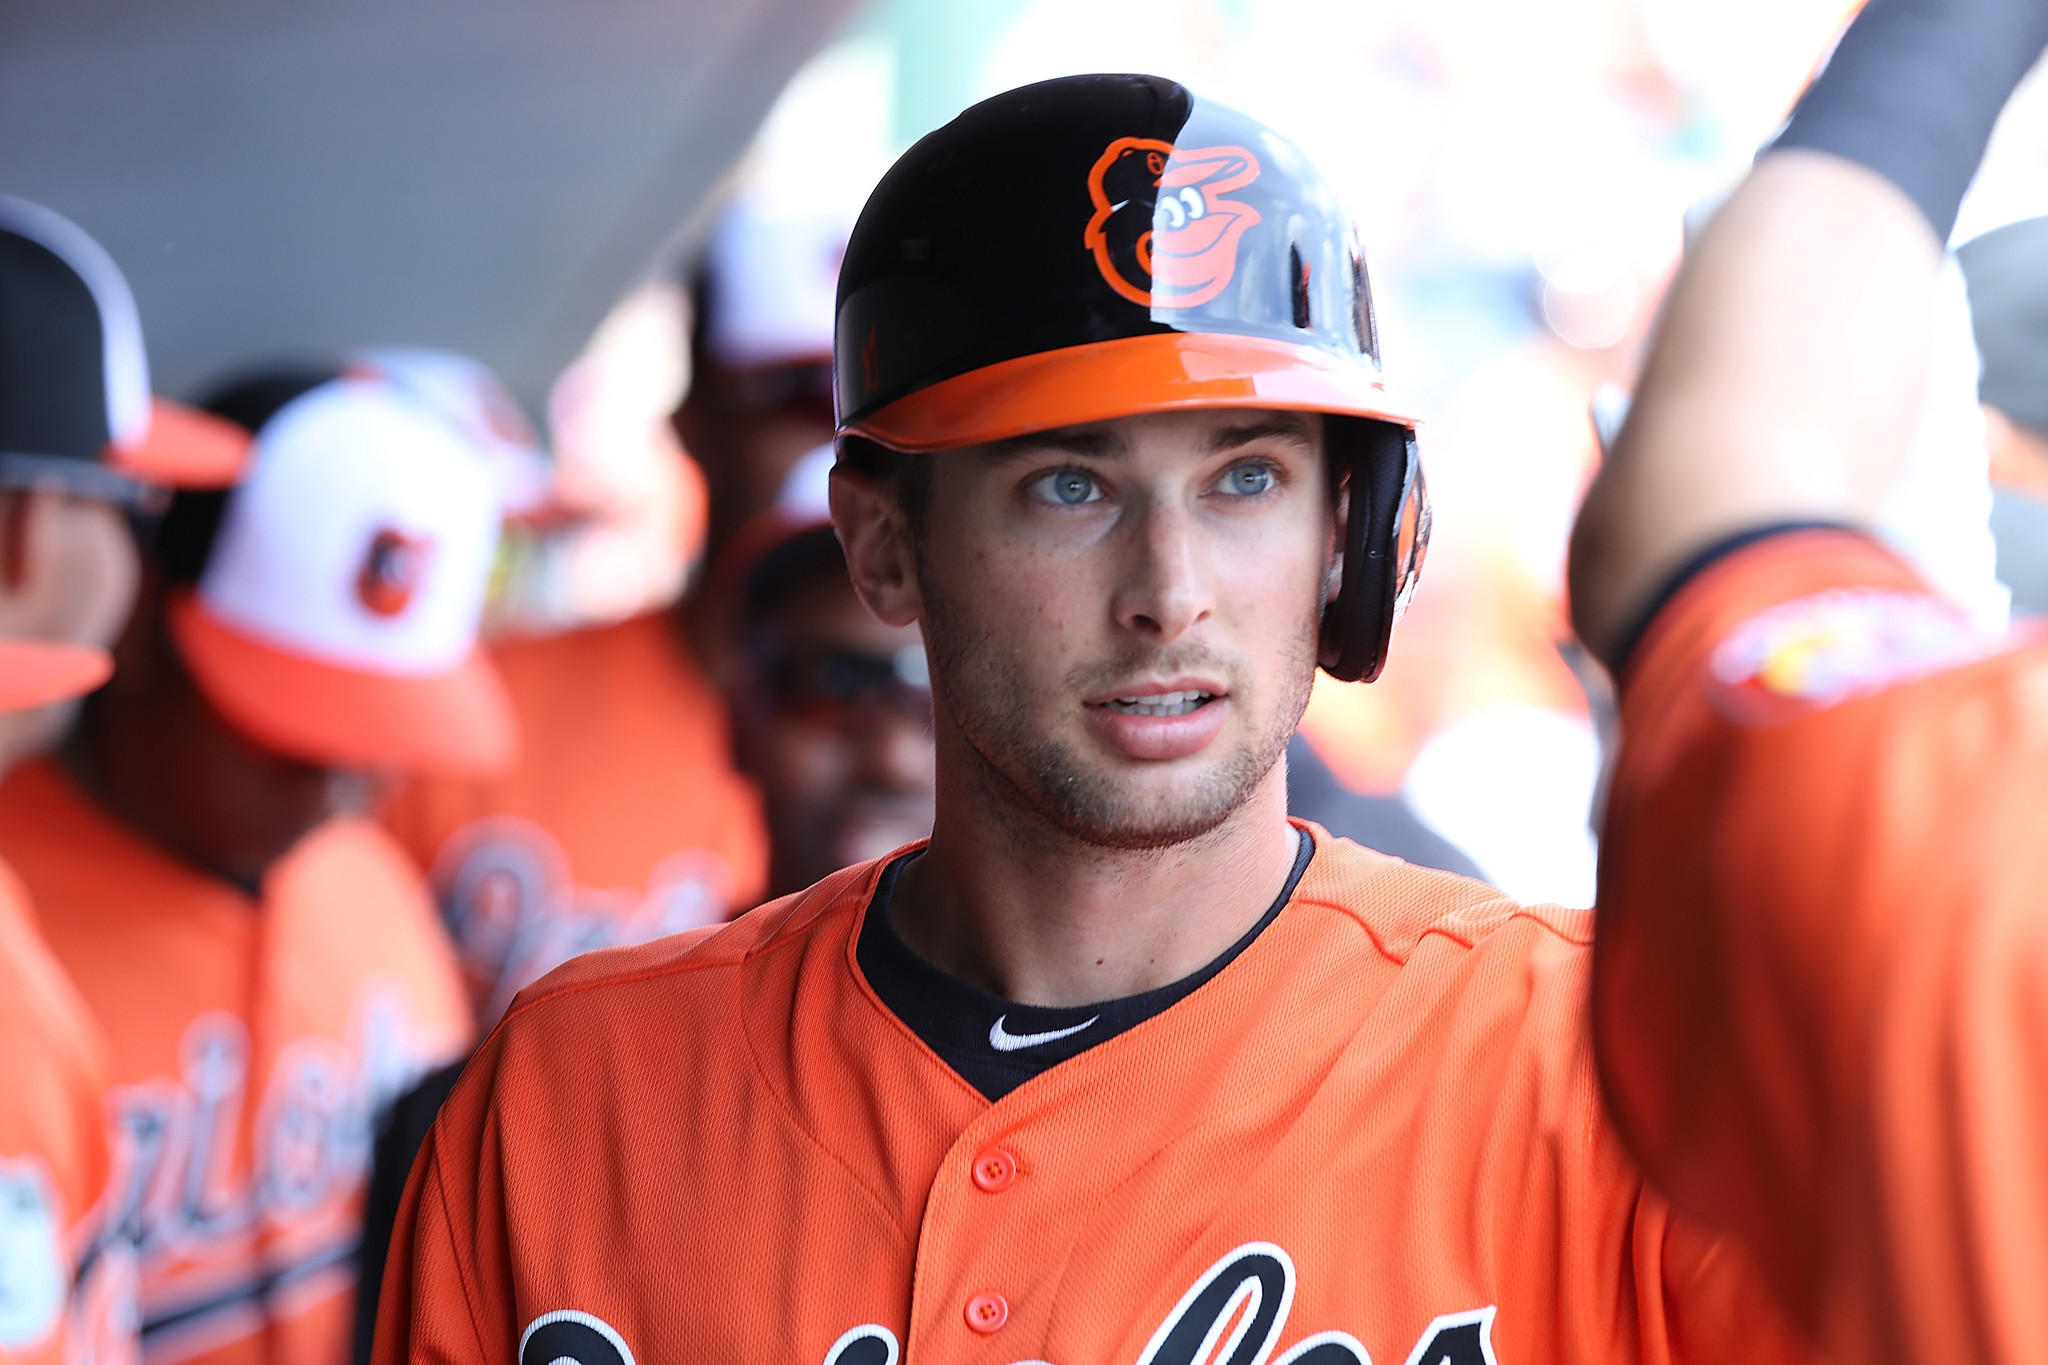 Bal-orioles-on-deck-rickard-returns-what-to-watch-friday-at-yankees-plus-series-matchups-20170428